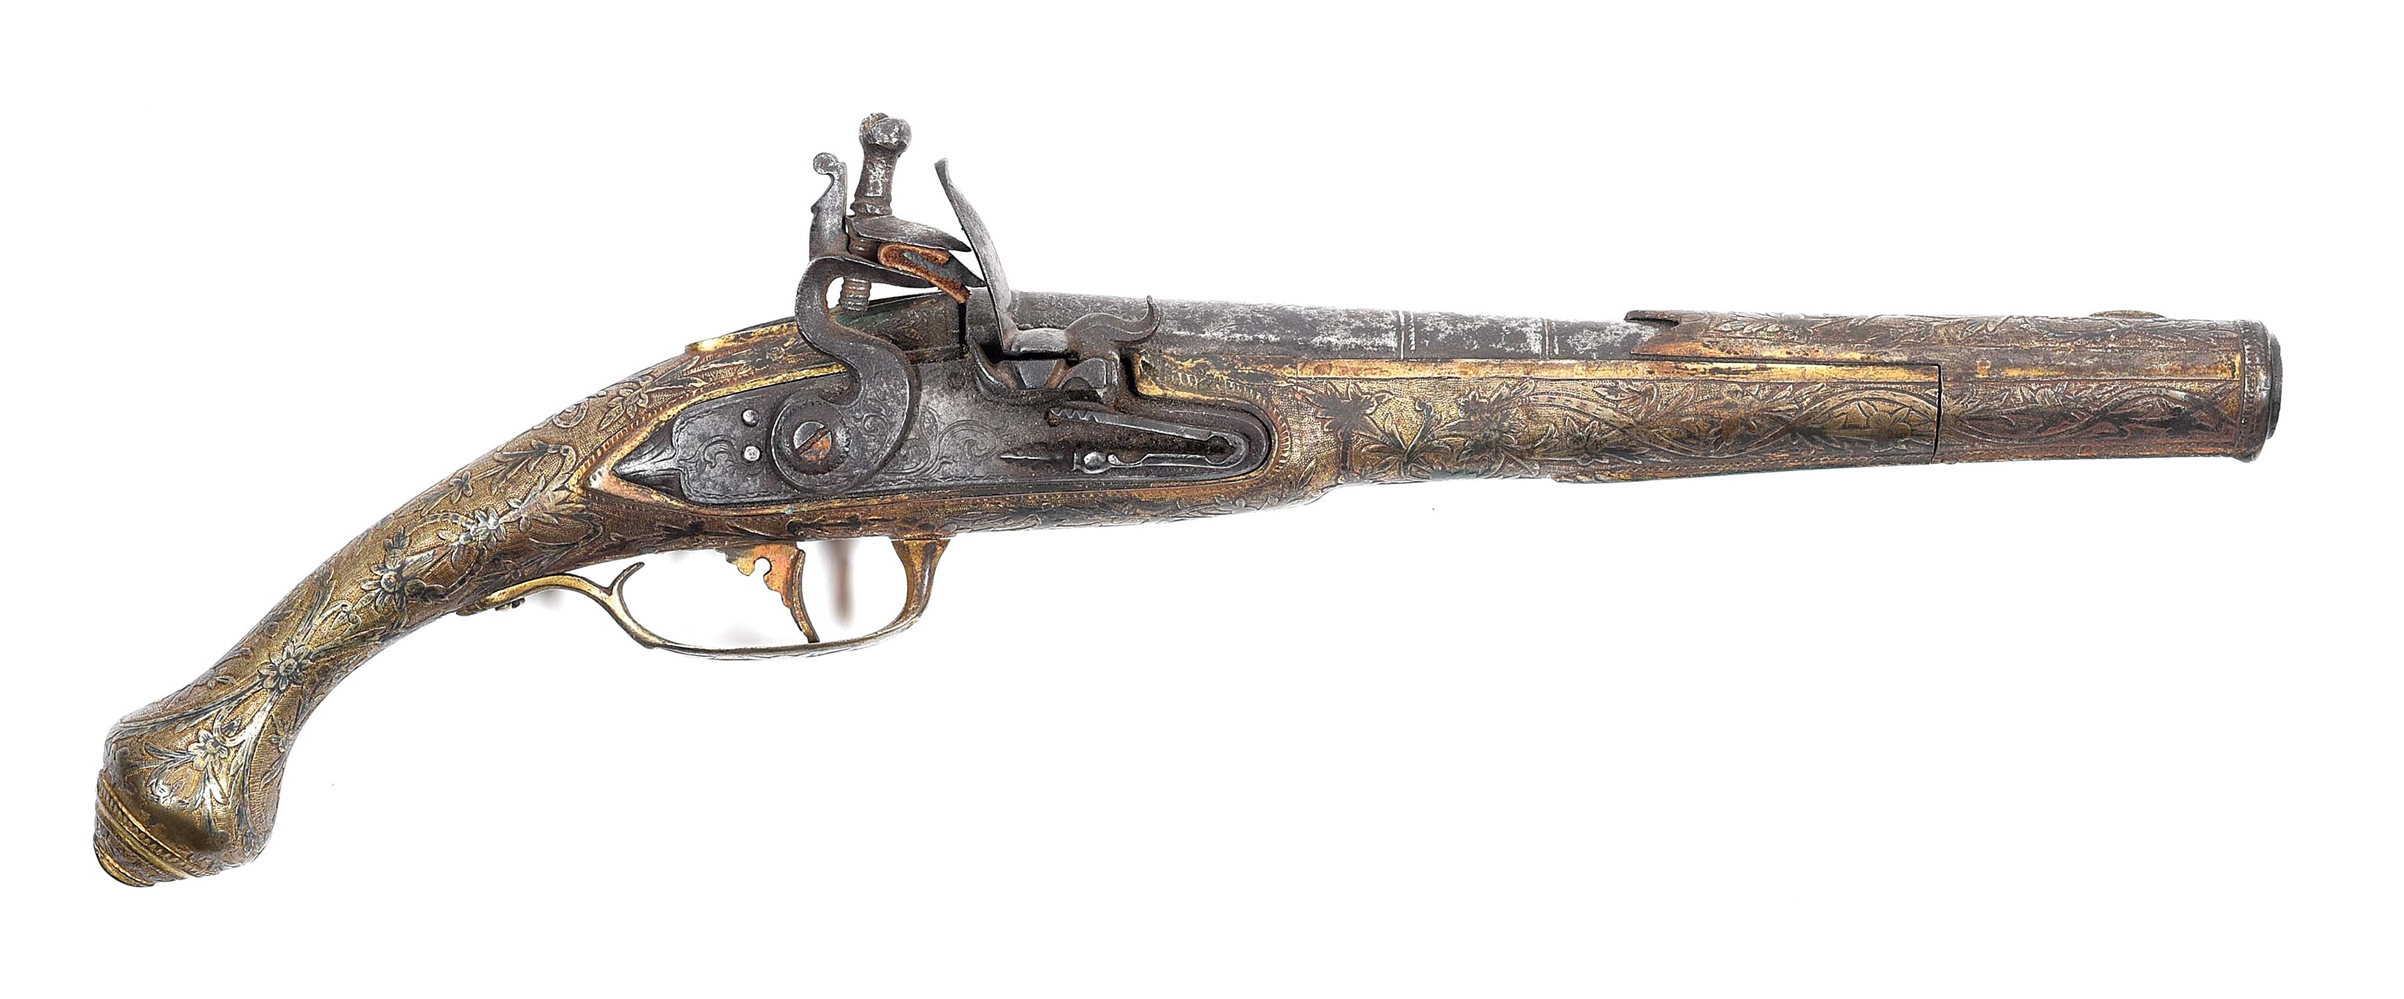 (A) AN OTTOMAN FLINTLOCK PISTOL WITH BRASS STOCK AND EXTENSIVE SILVER INLAY.